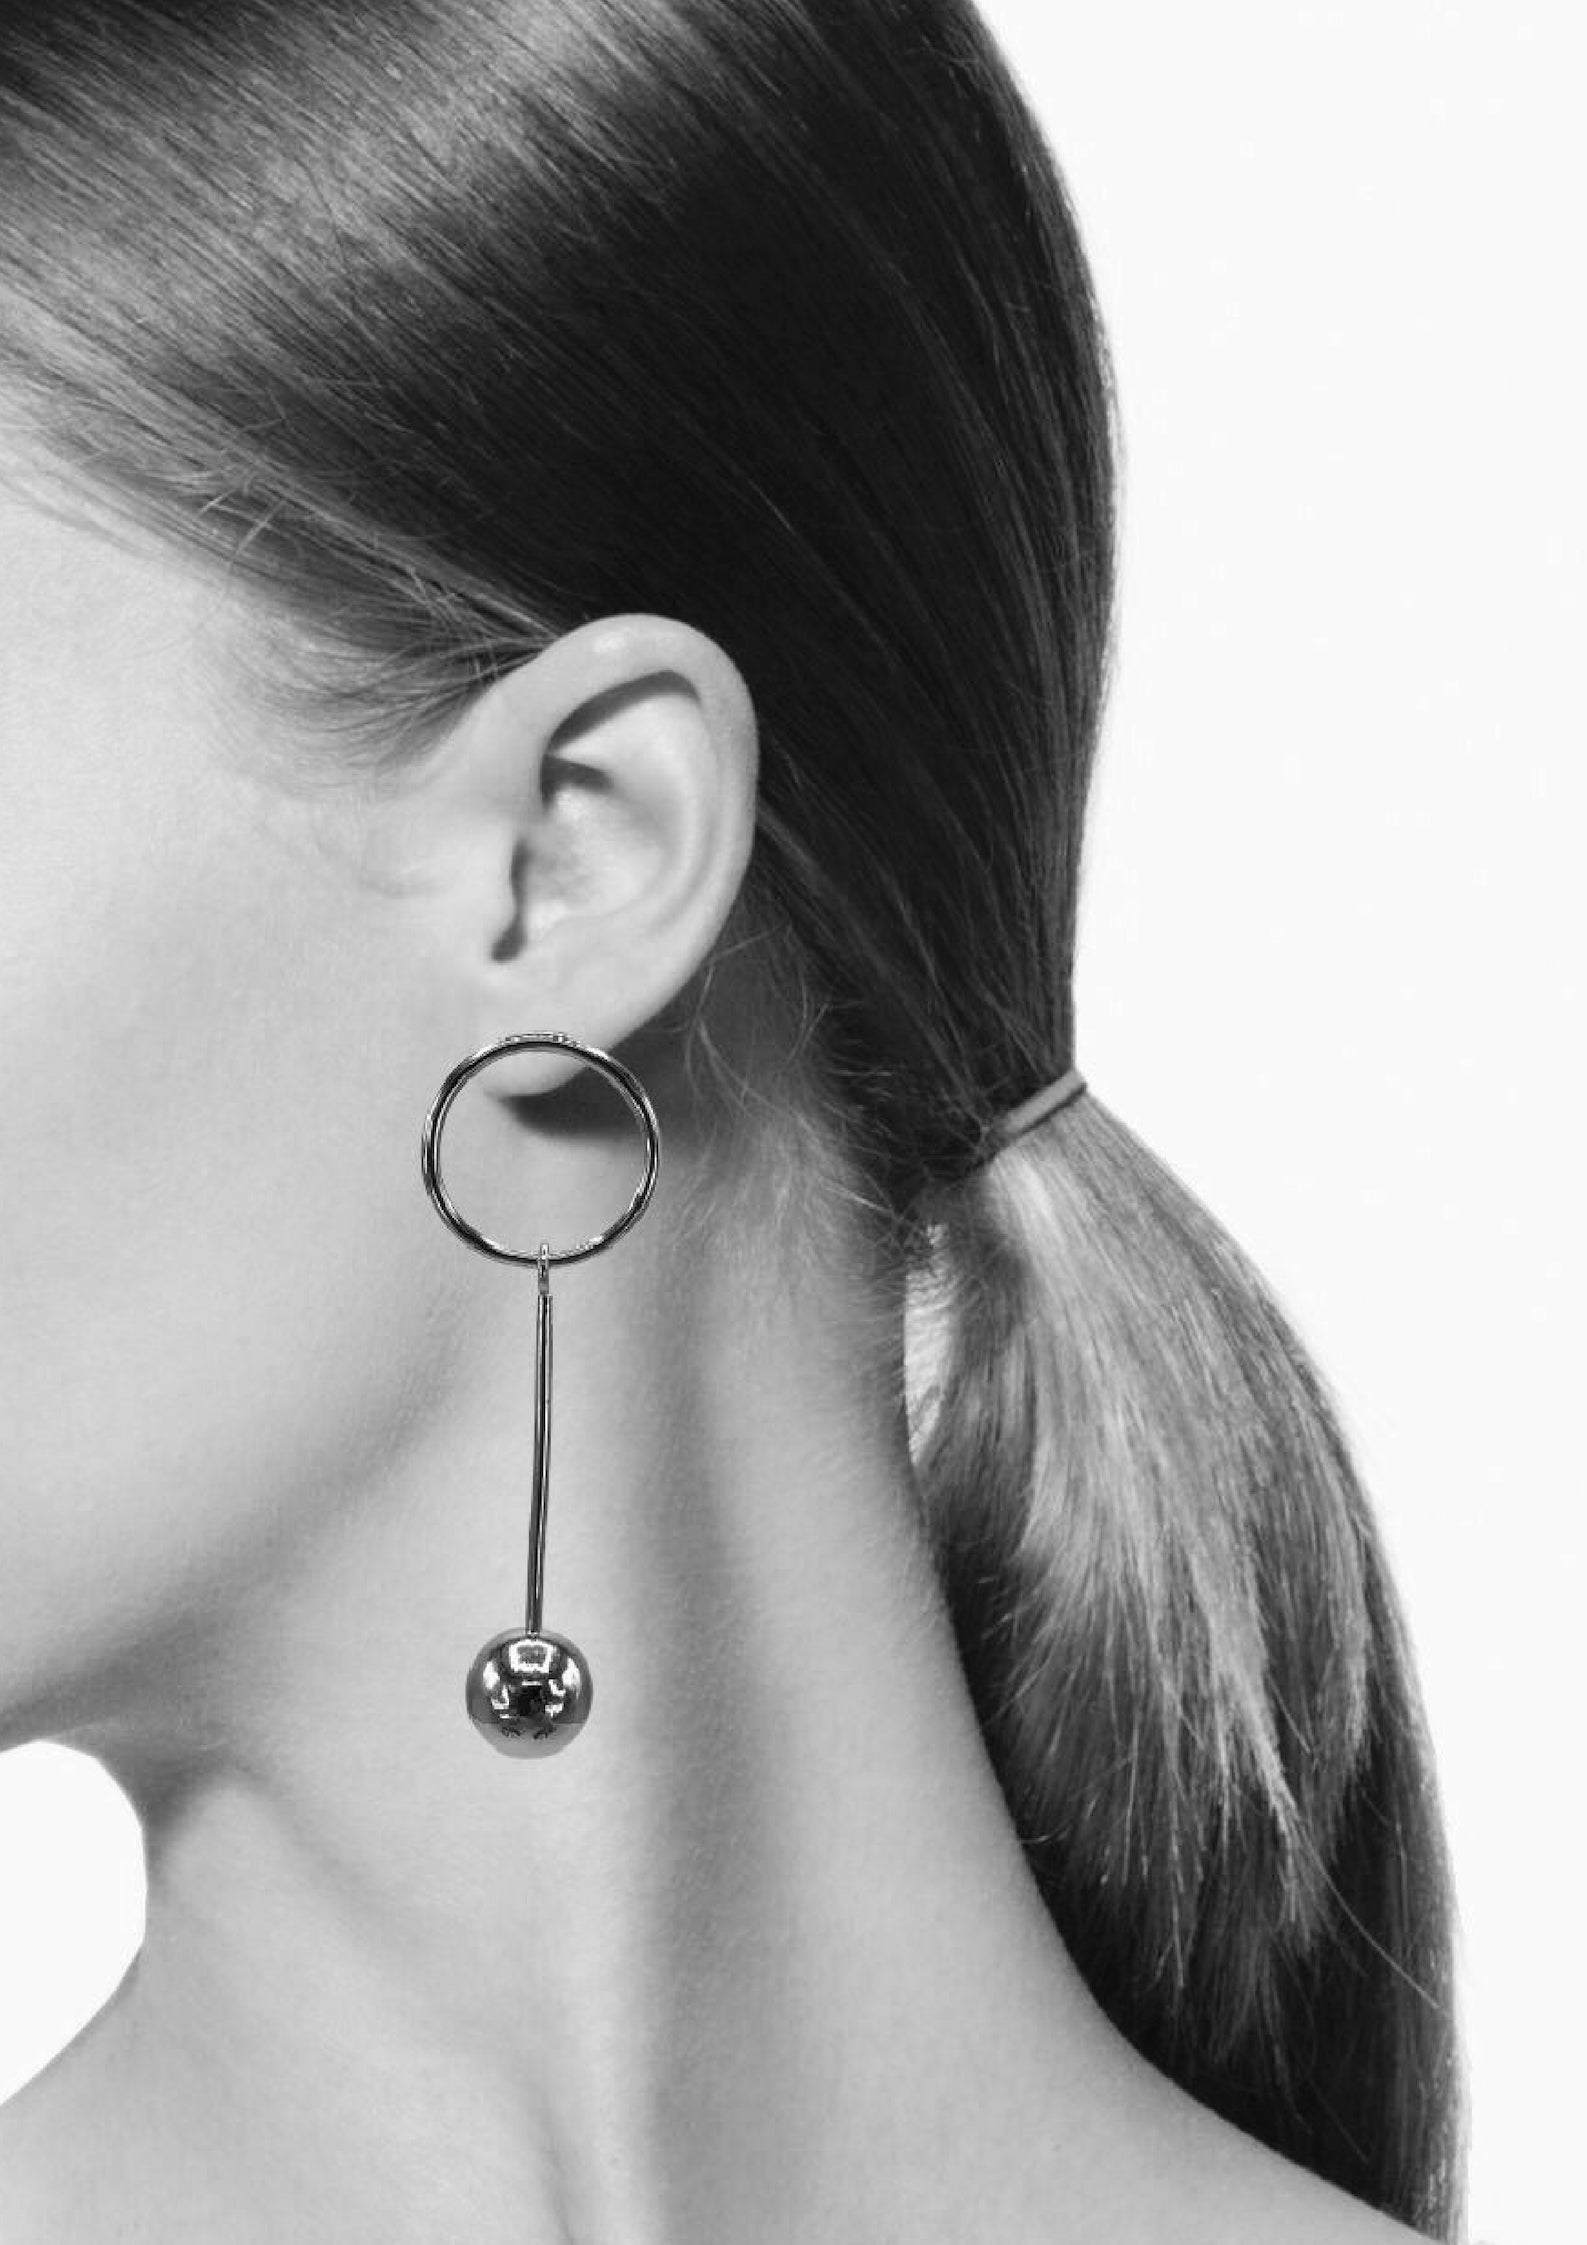 Orbita Pendulum Silver Earrings-Earrings-JAREDJAMIN Jewelry Online-JARED JAMIN